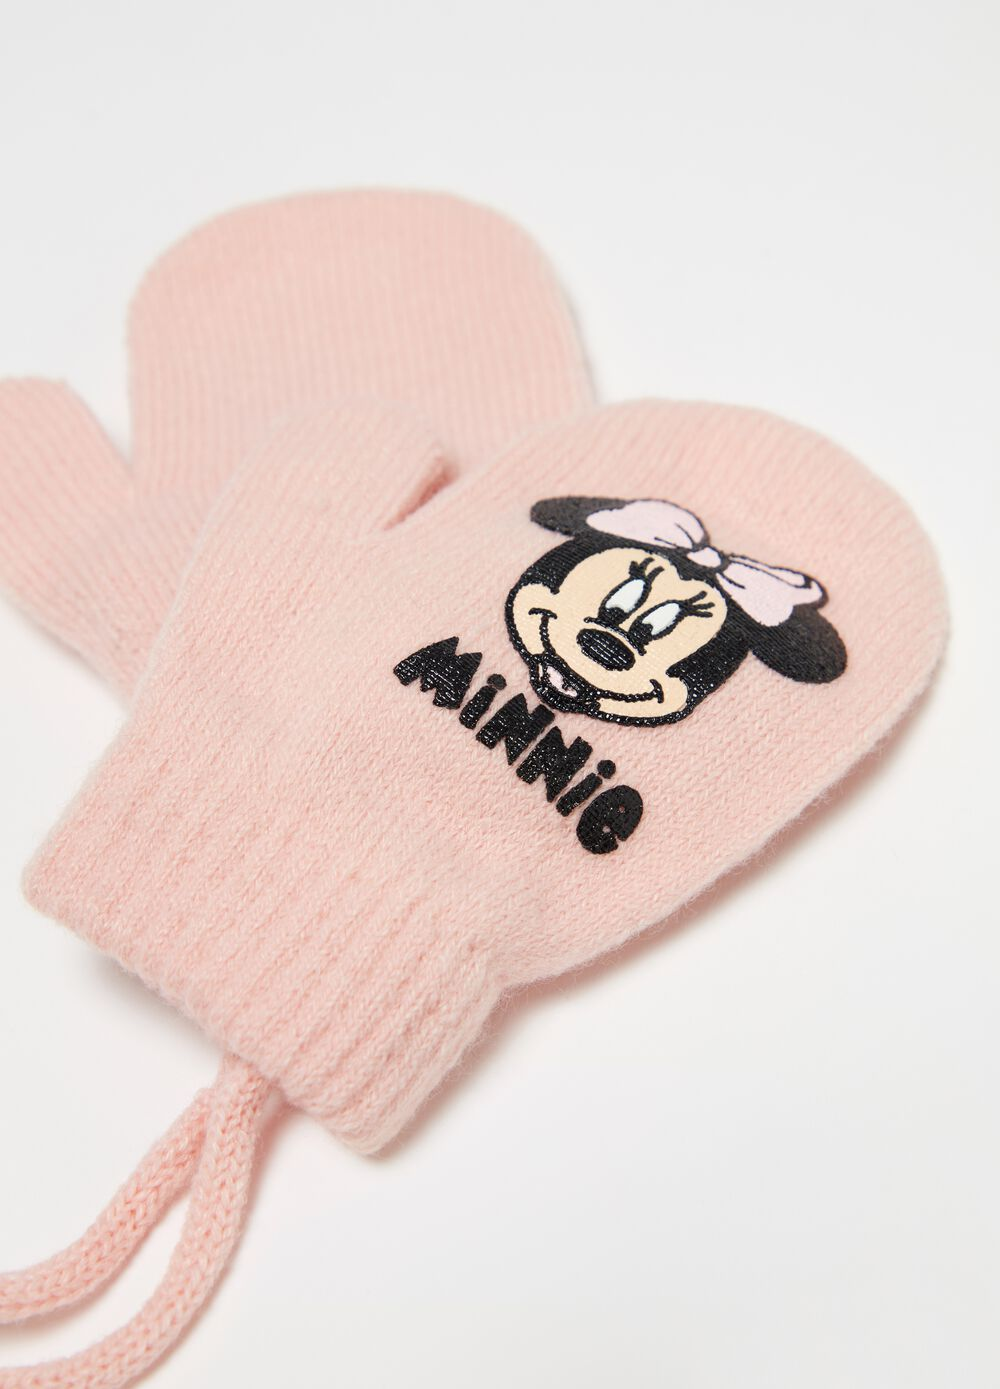 Mittens with glitter Disney Minnie Mouse print